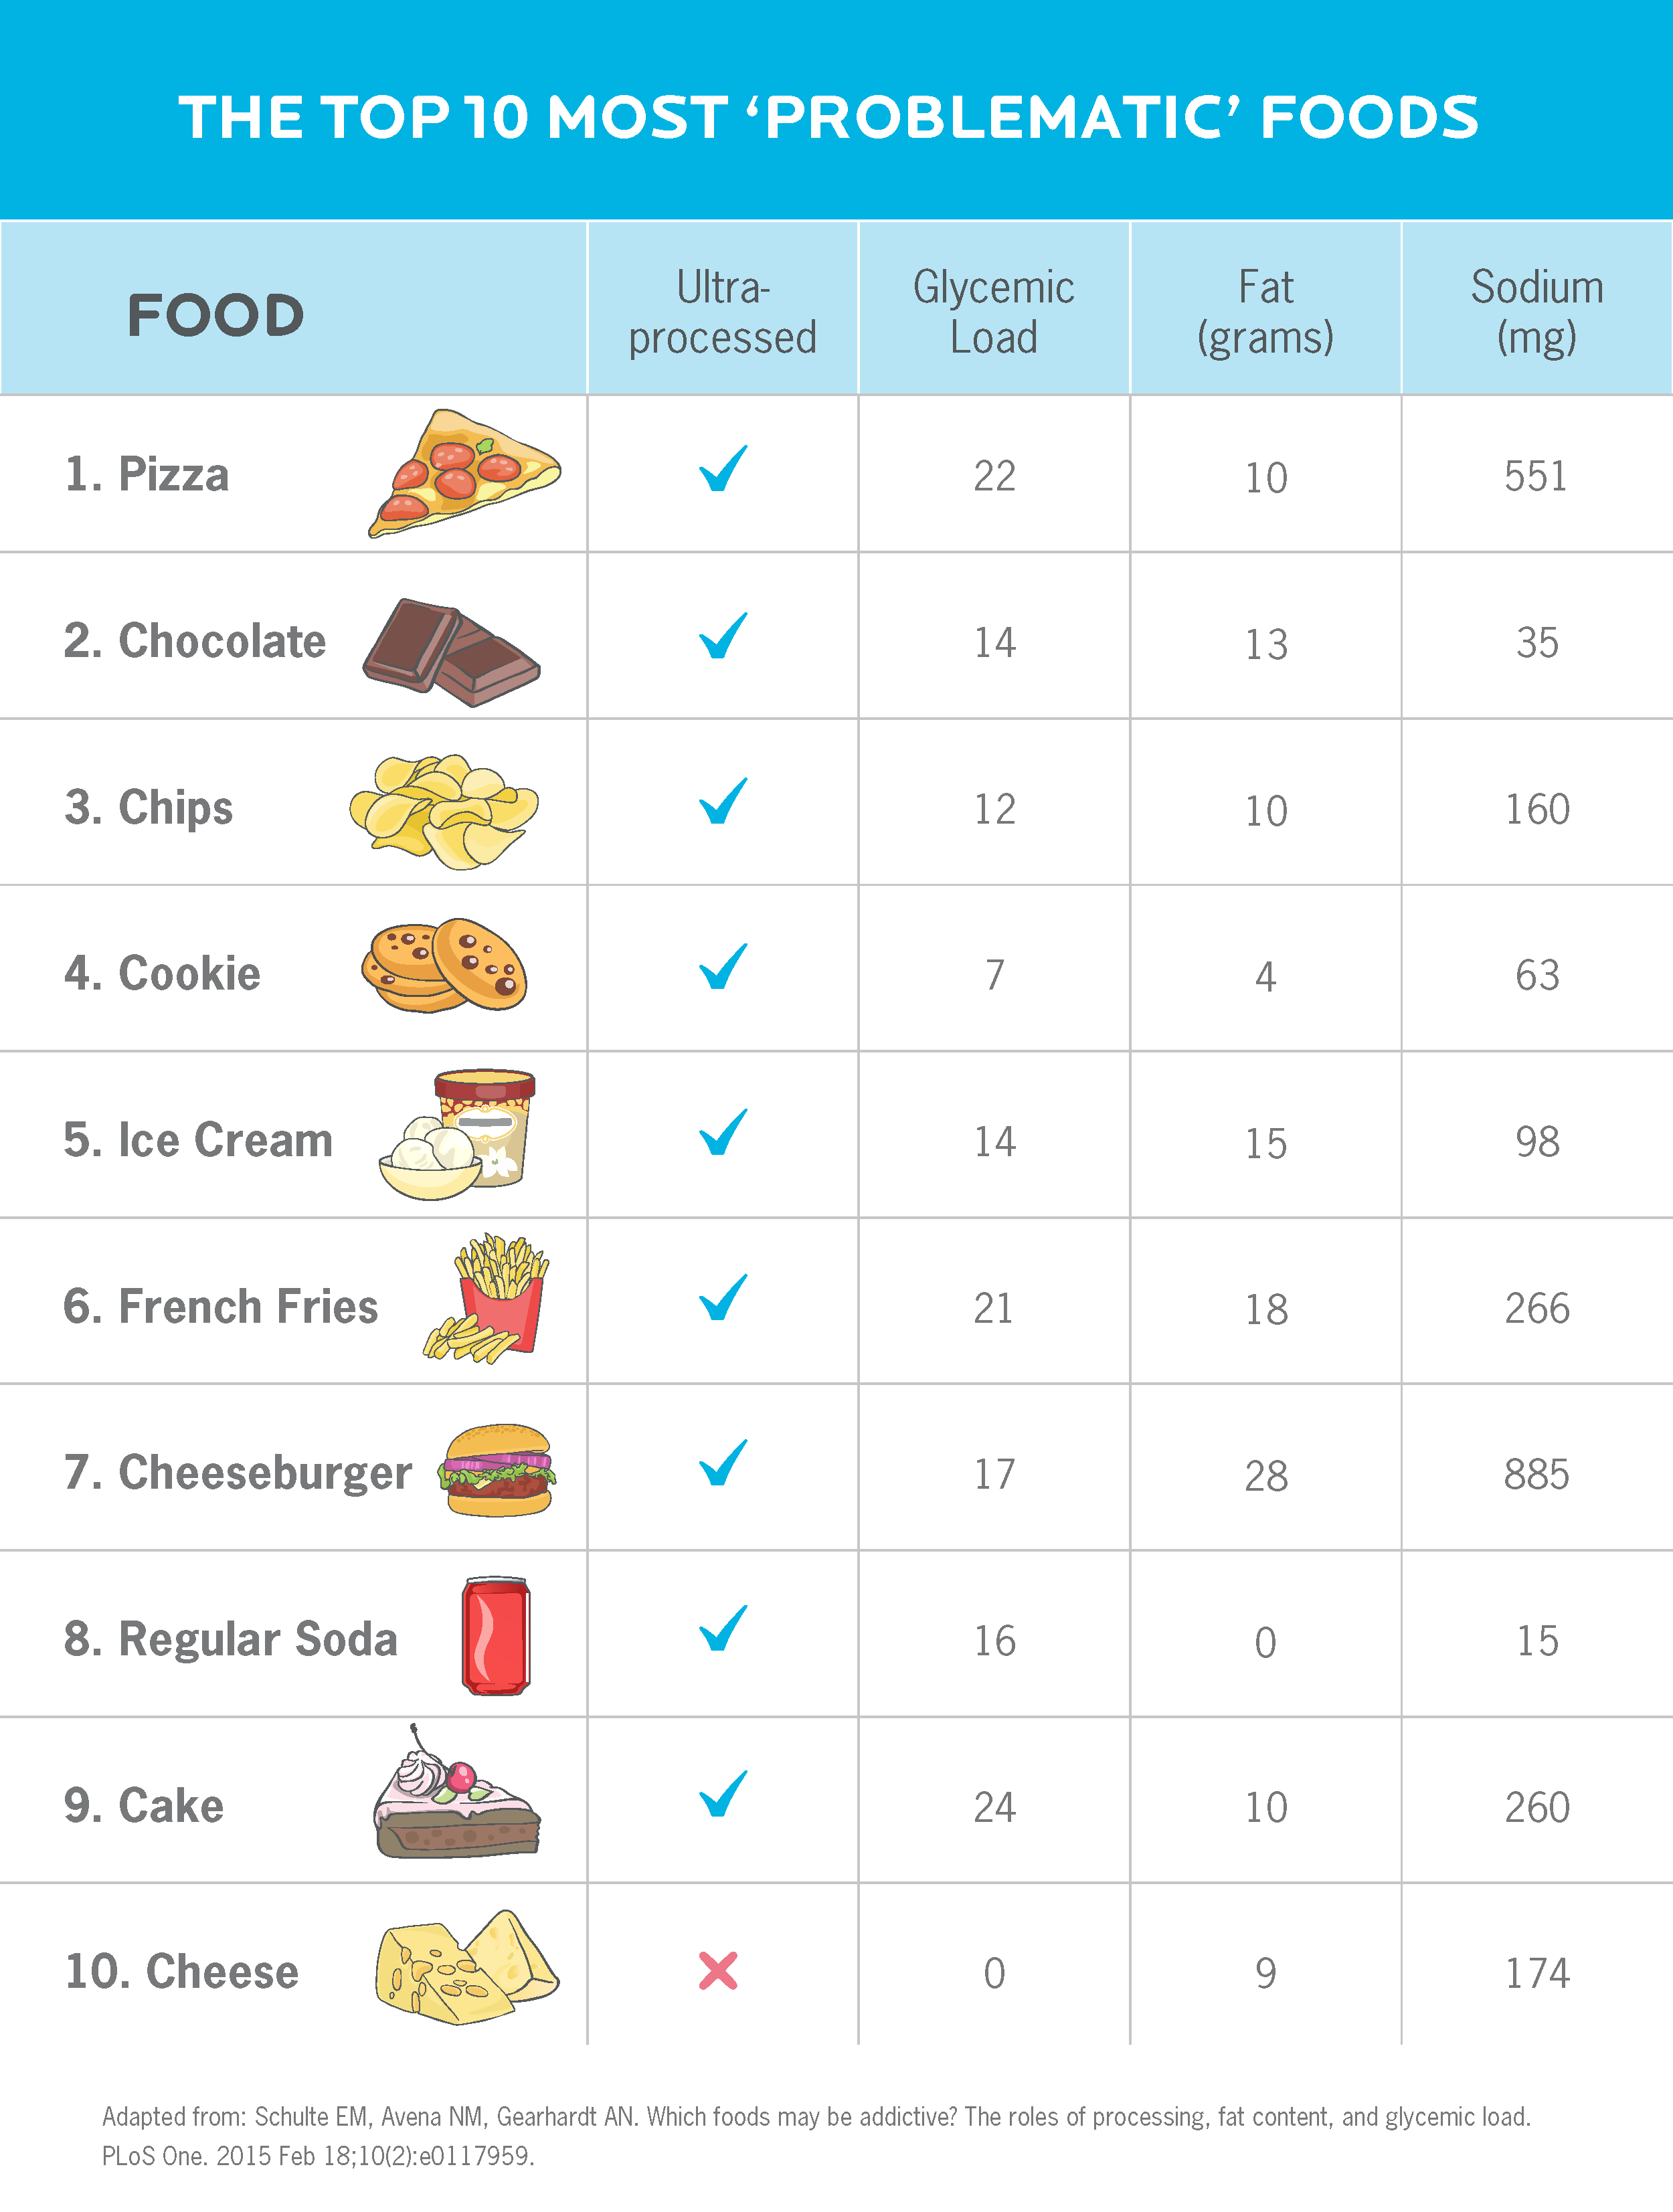 "A chart showing the top 10 most ""addictive"" foods. In order, they are: 1) pizza, 2) chocolate, 3) chips, 4) cookie, 5) ice cream, 6) French fries, 7) cheeseburger, 8) regular soda, 9) cake, 10) cheese.) All but one of the foods (cheese) are ultra-processed."